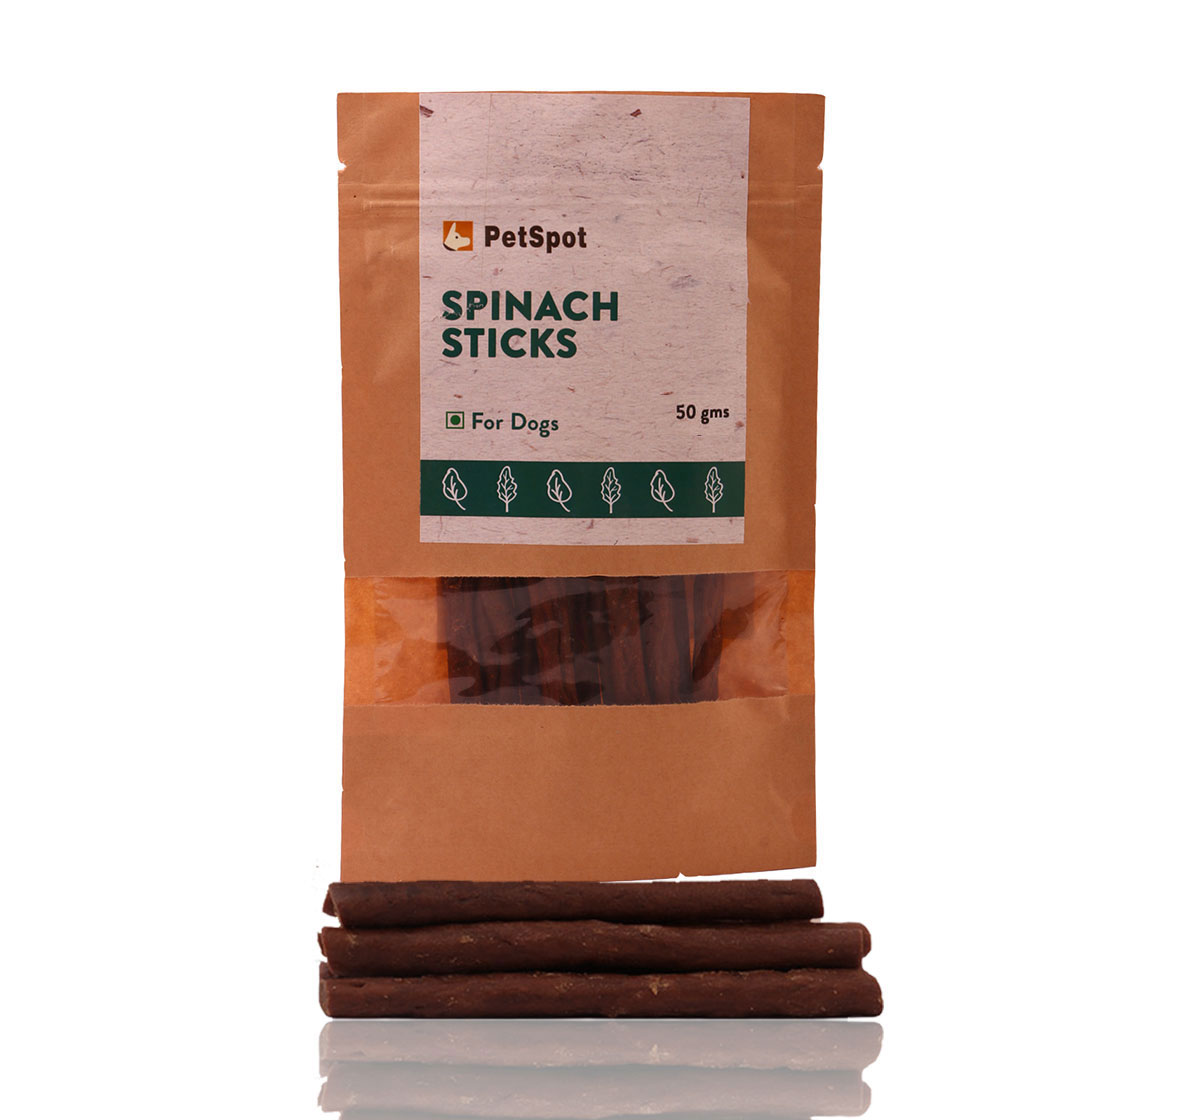 PetSpot Spinach Sticks - 50 gm